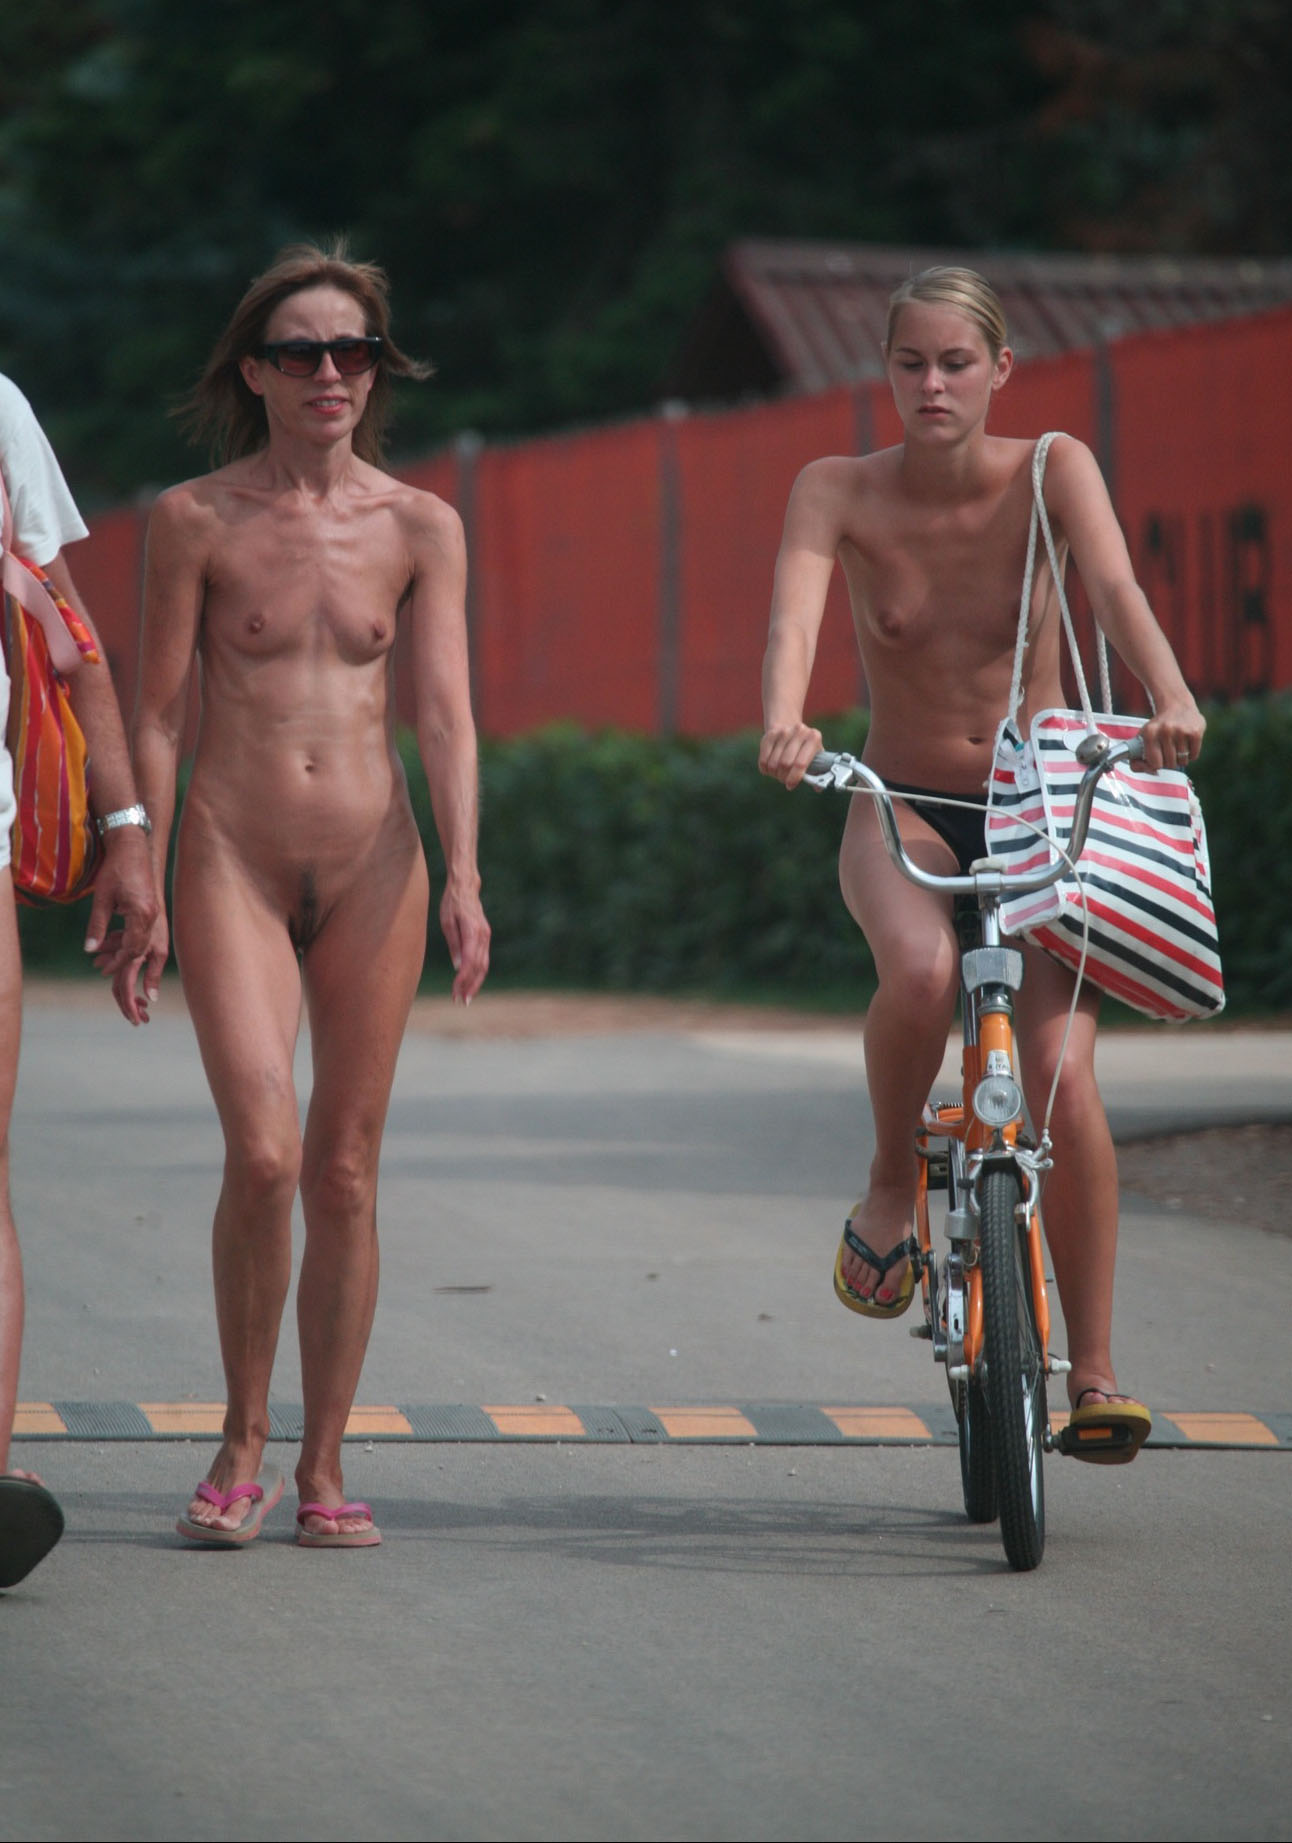 Nudity and protest